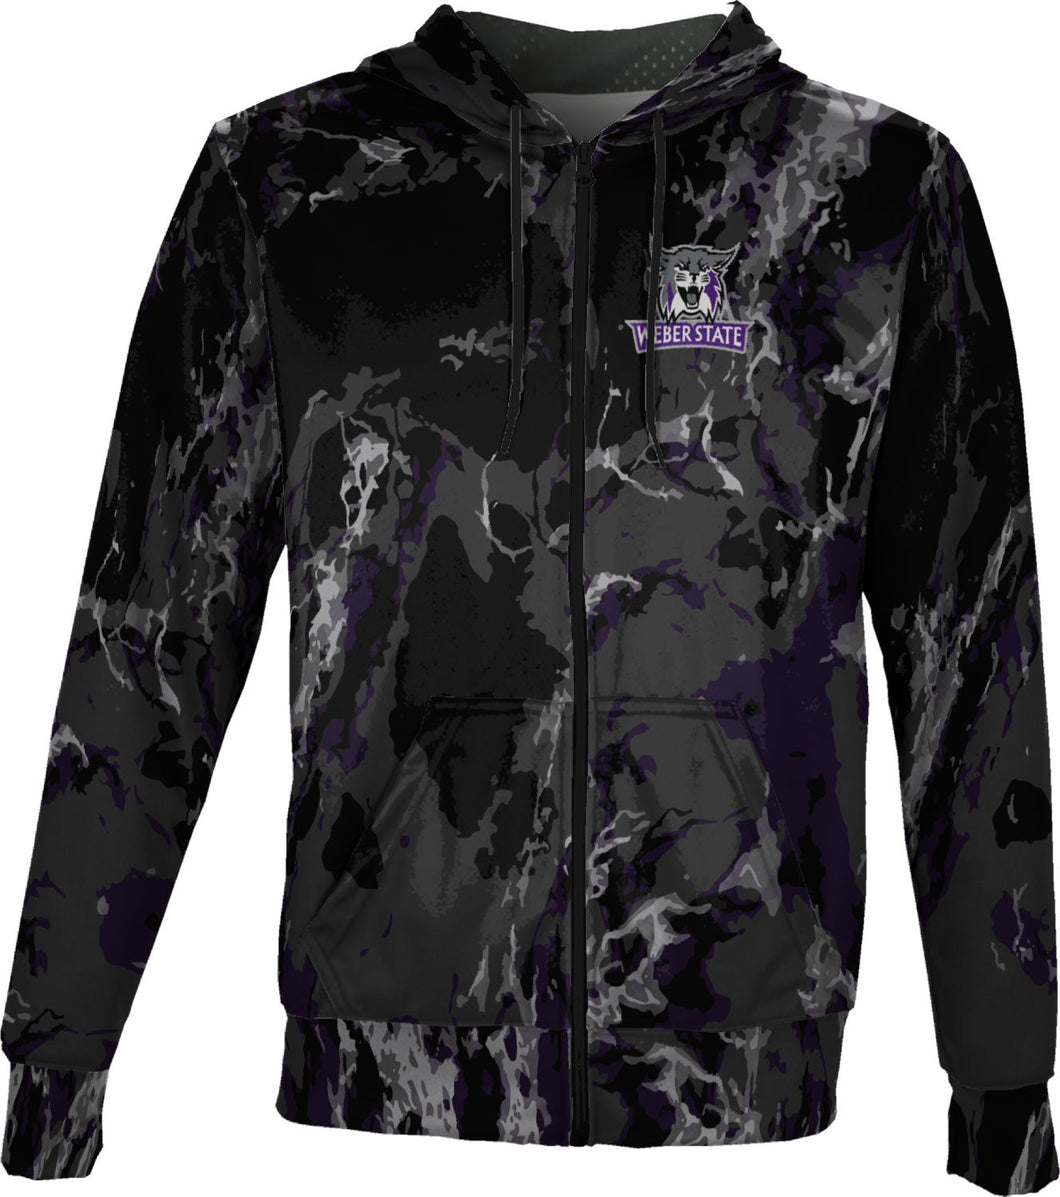 Weber State University: Boys' Full Zip Hoodie - Marble